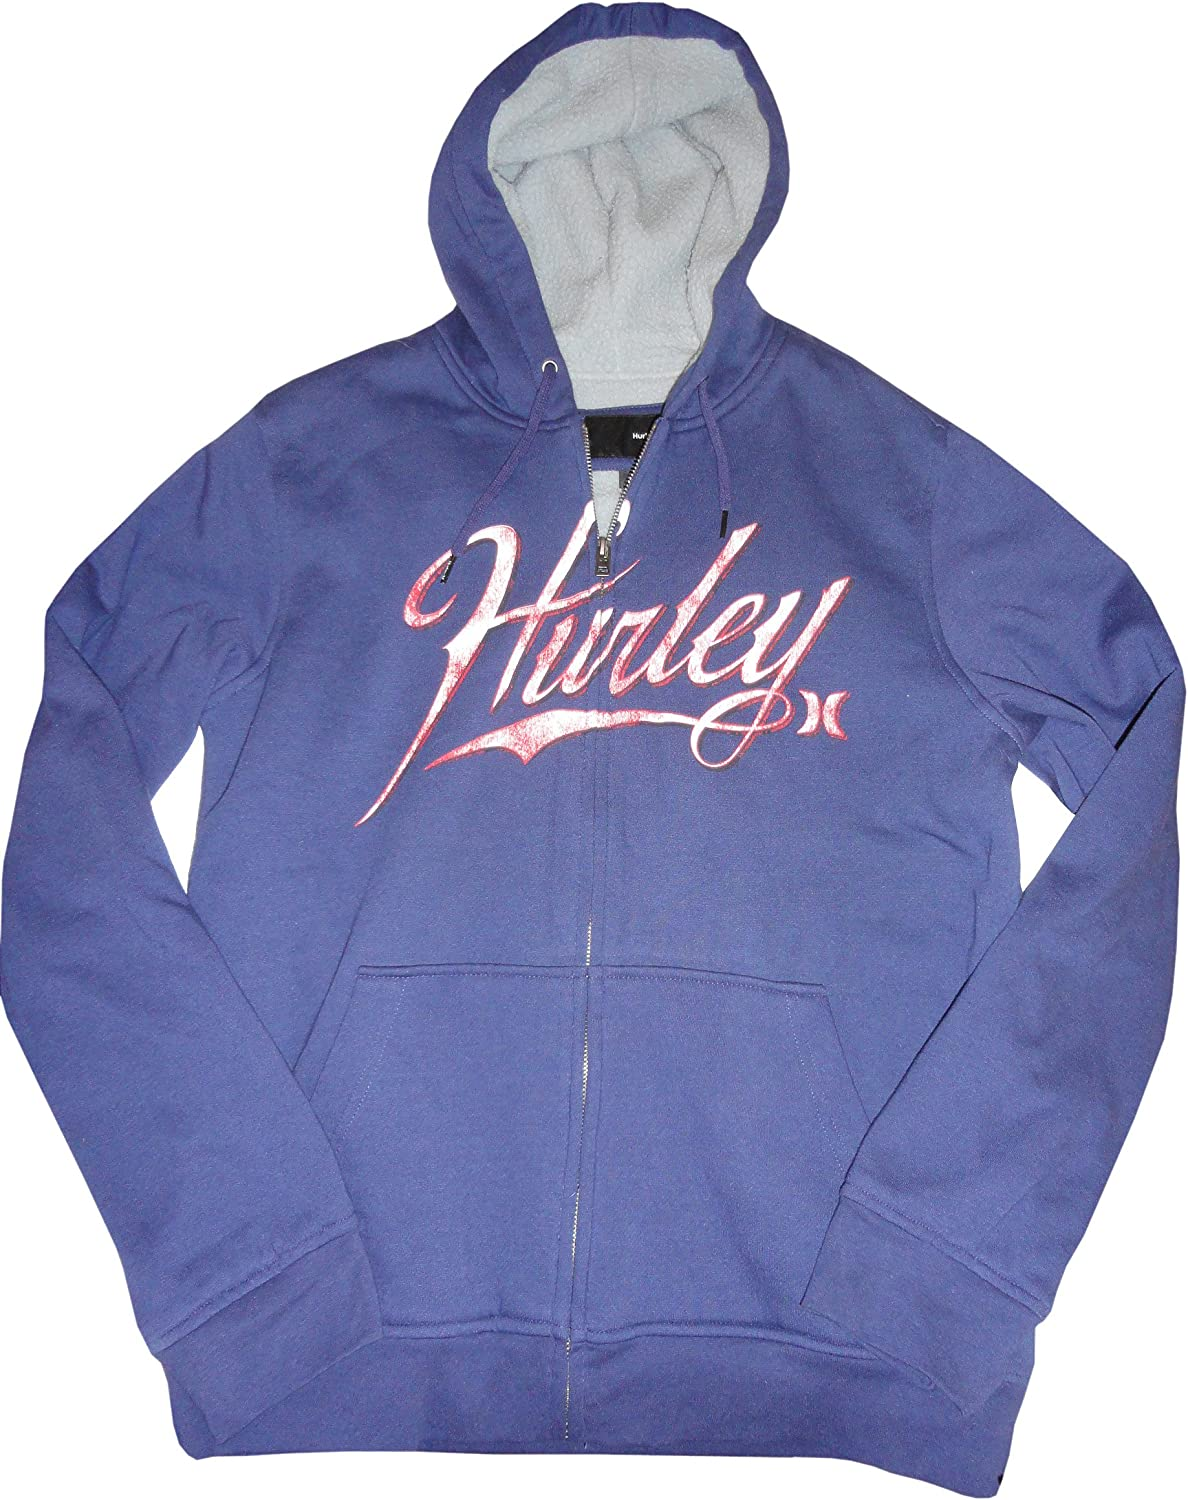 Hurley Young Men's Hooded Sweat Jacket Hoodie Outfield Size Medium Blue